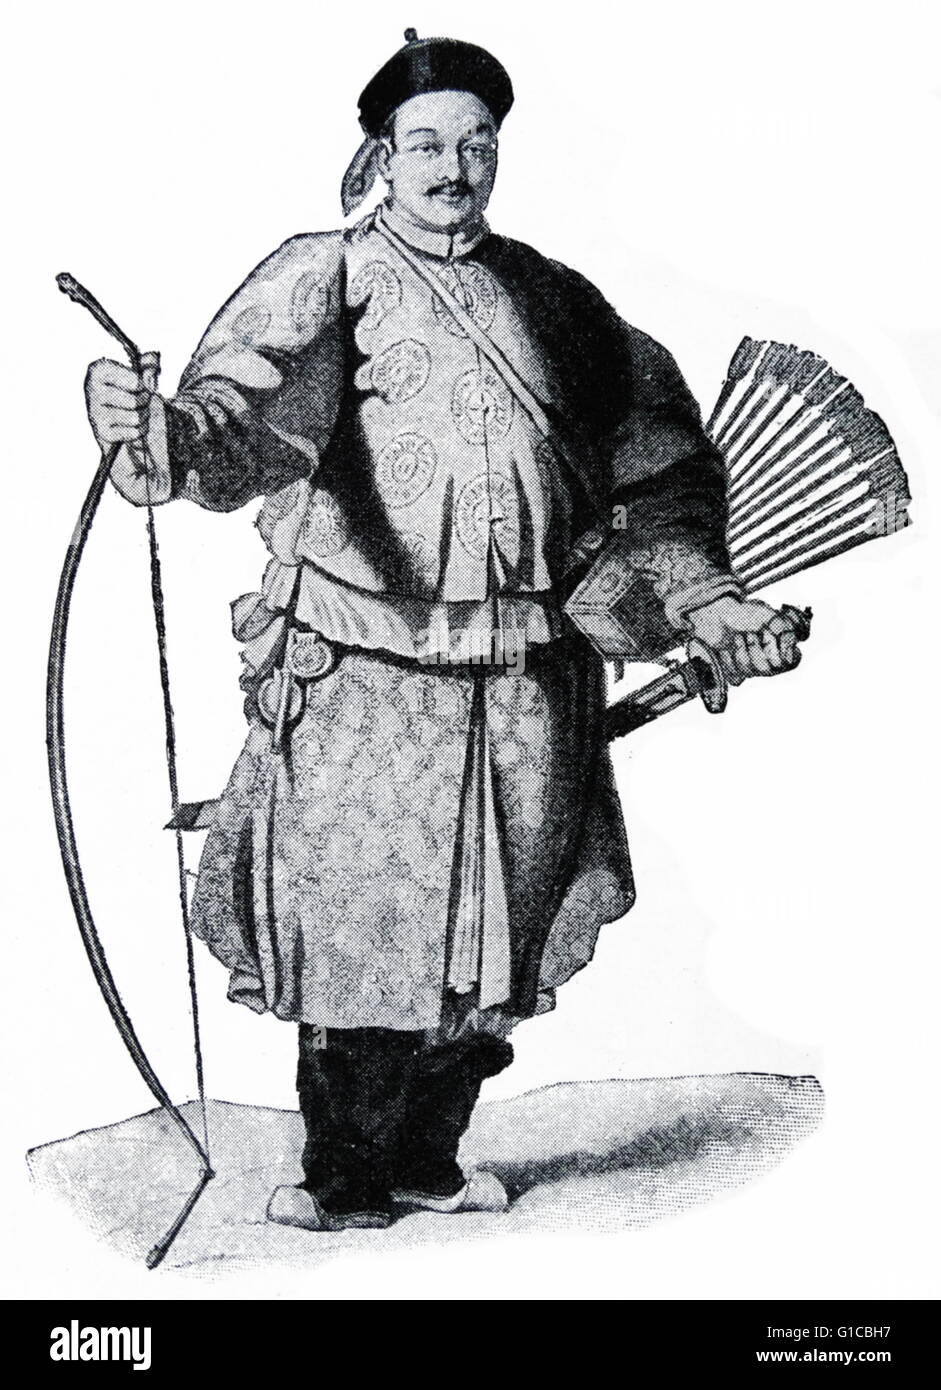 Engraving depicting a soldier of the Archery Corps - Stock Image